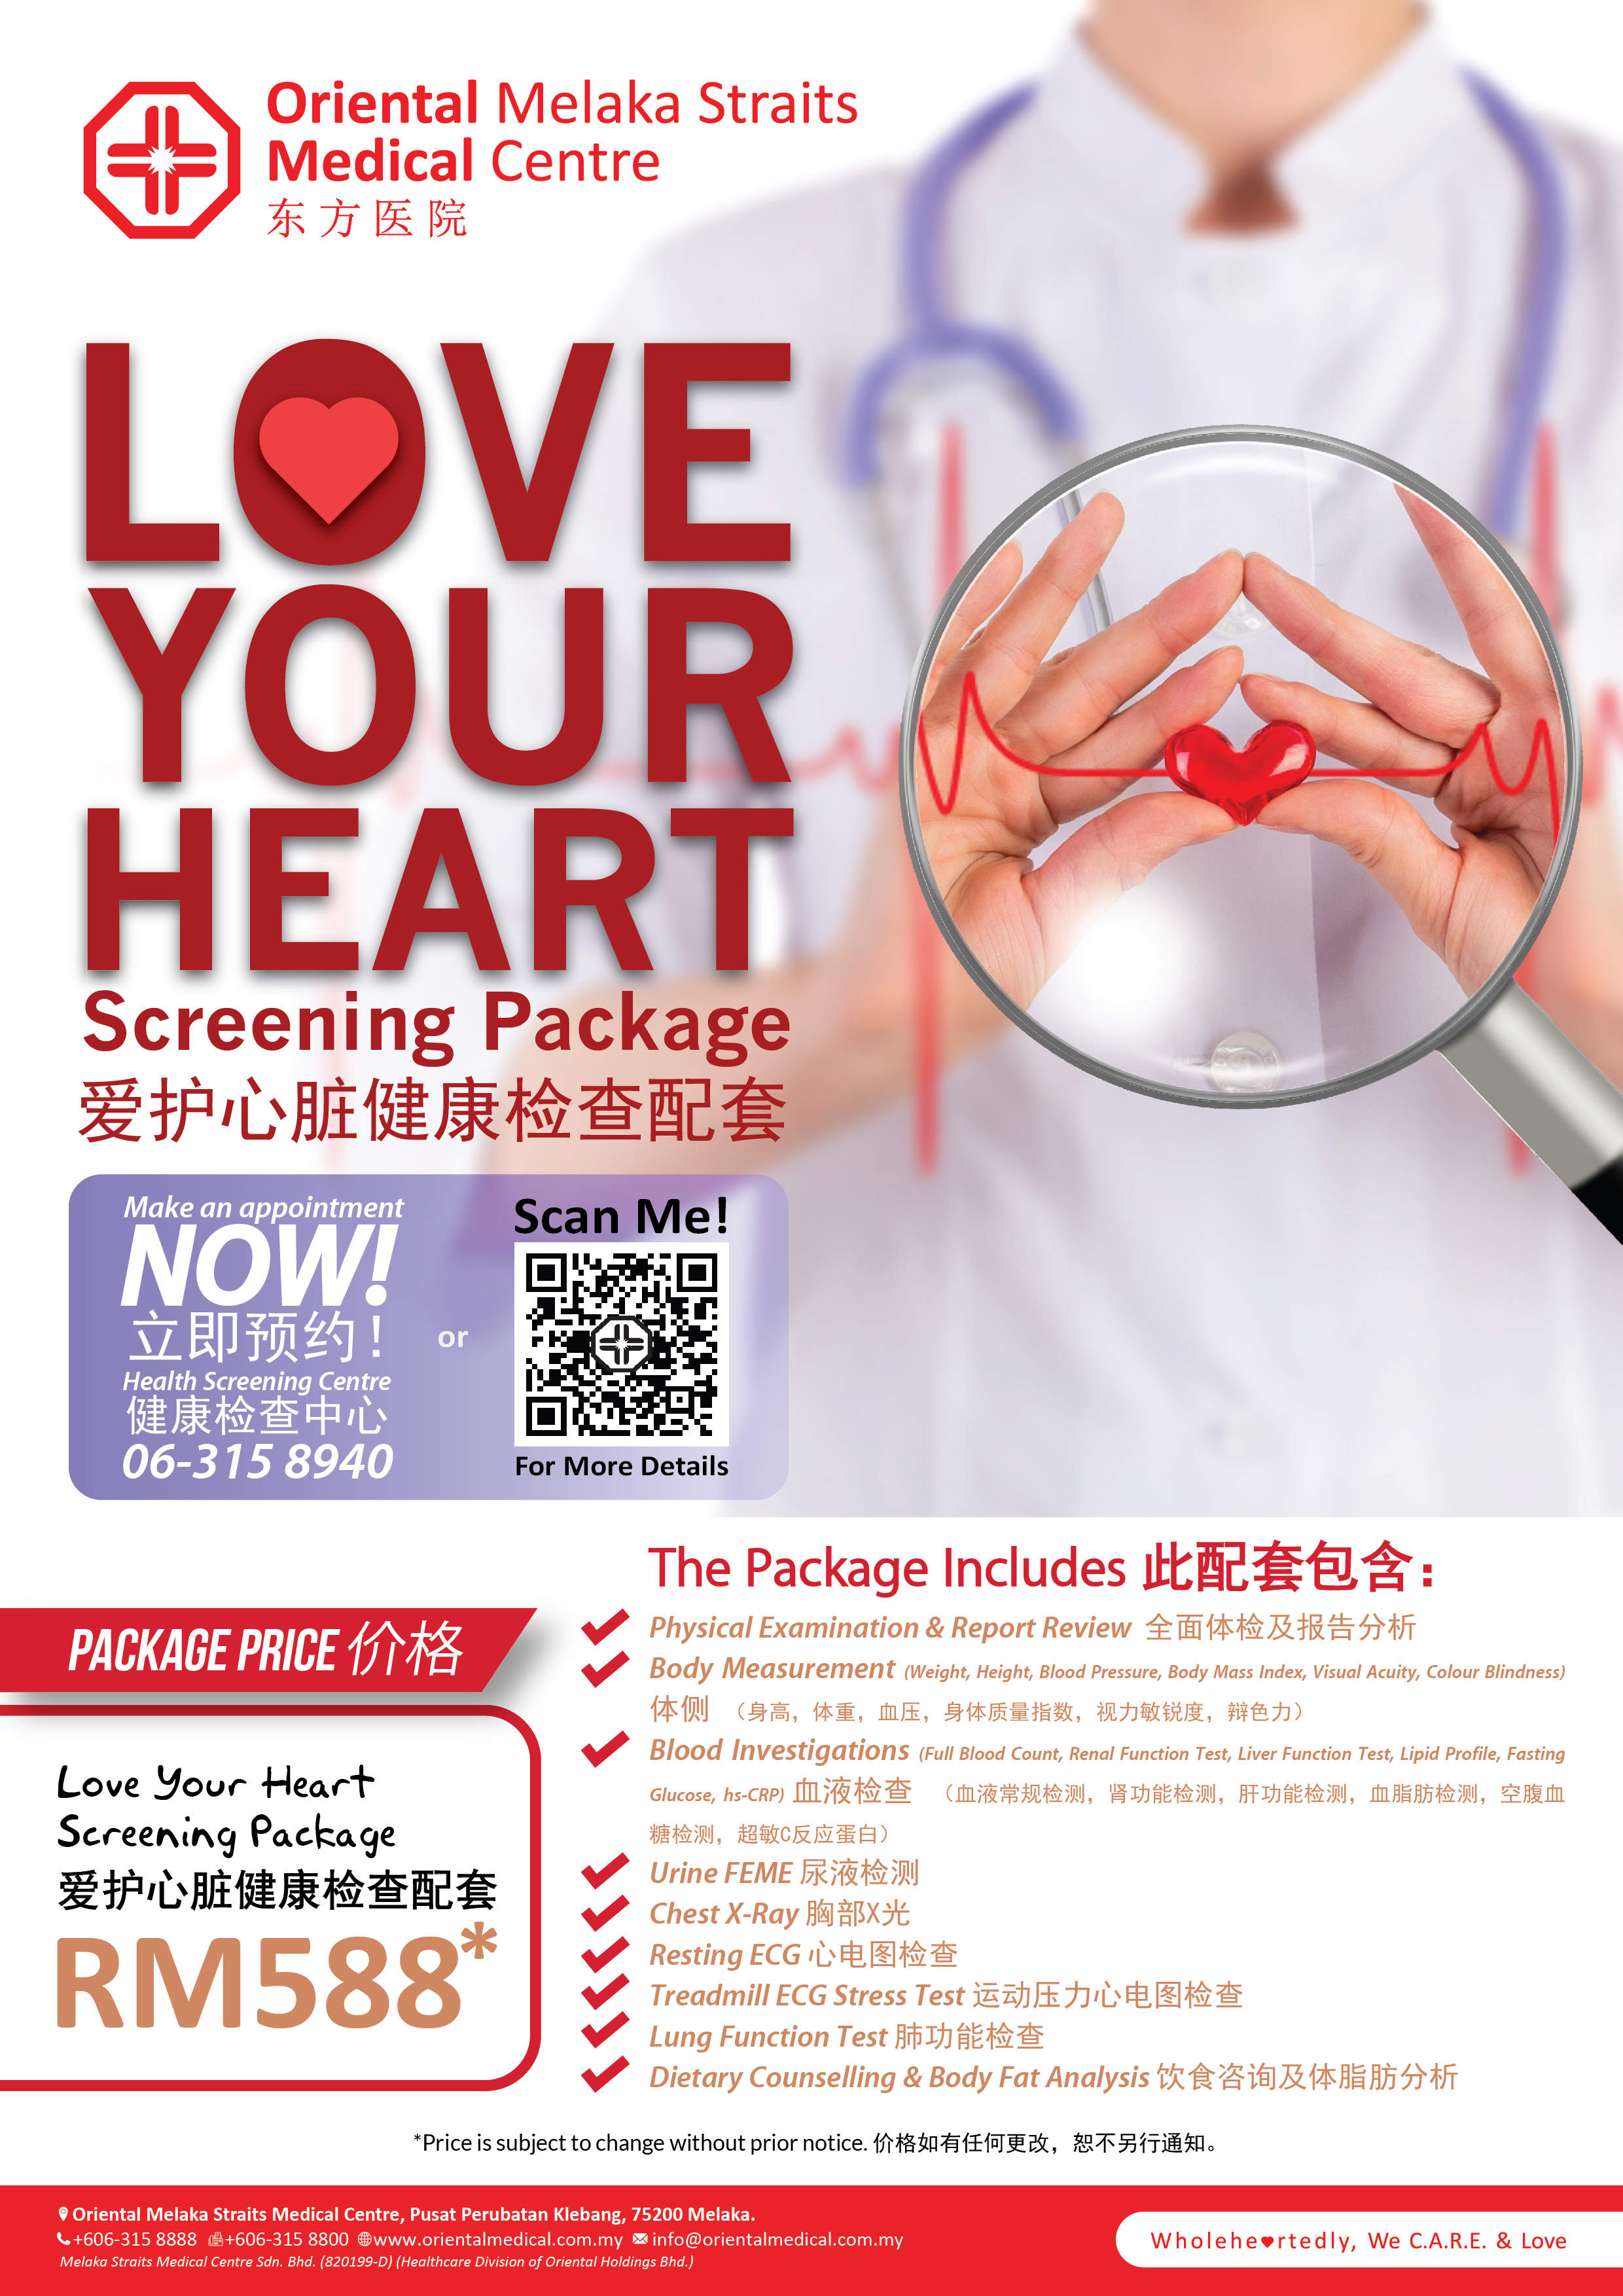 LOVE-YOUR-HEART-SCREENING-PACKAGE-2018_190418_nt-05